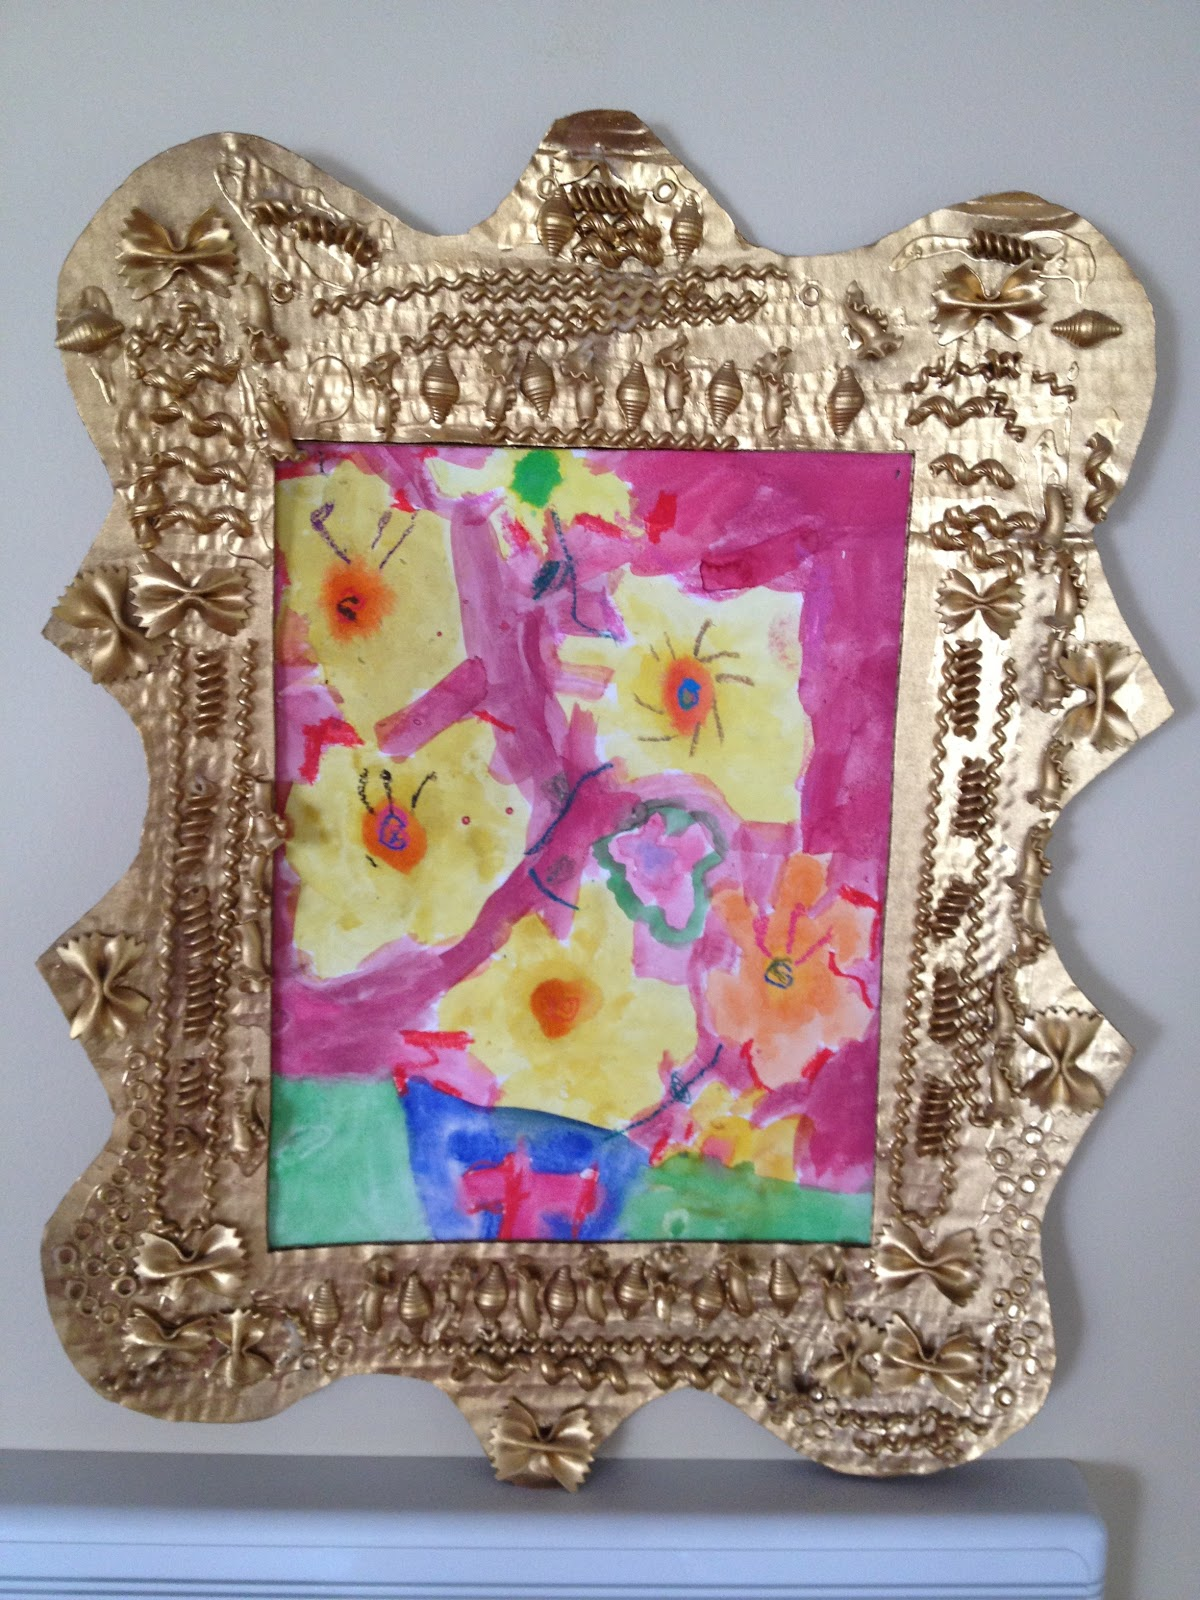 Handmade mothers day gifts or diy earth day craft diy noodle handmade mothers day gifts or diy earth day craft diy noodle frame jeuxipadfo Images